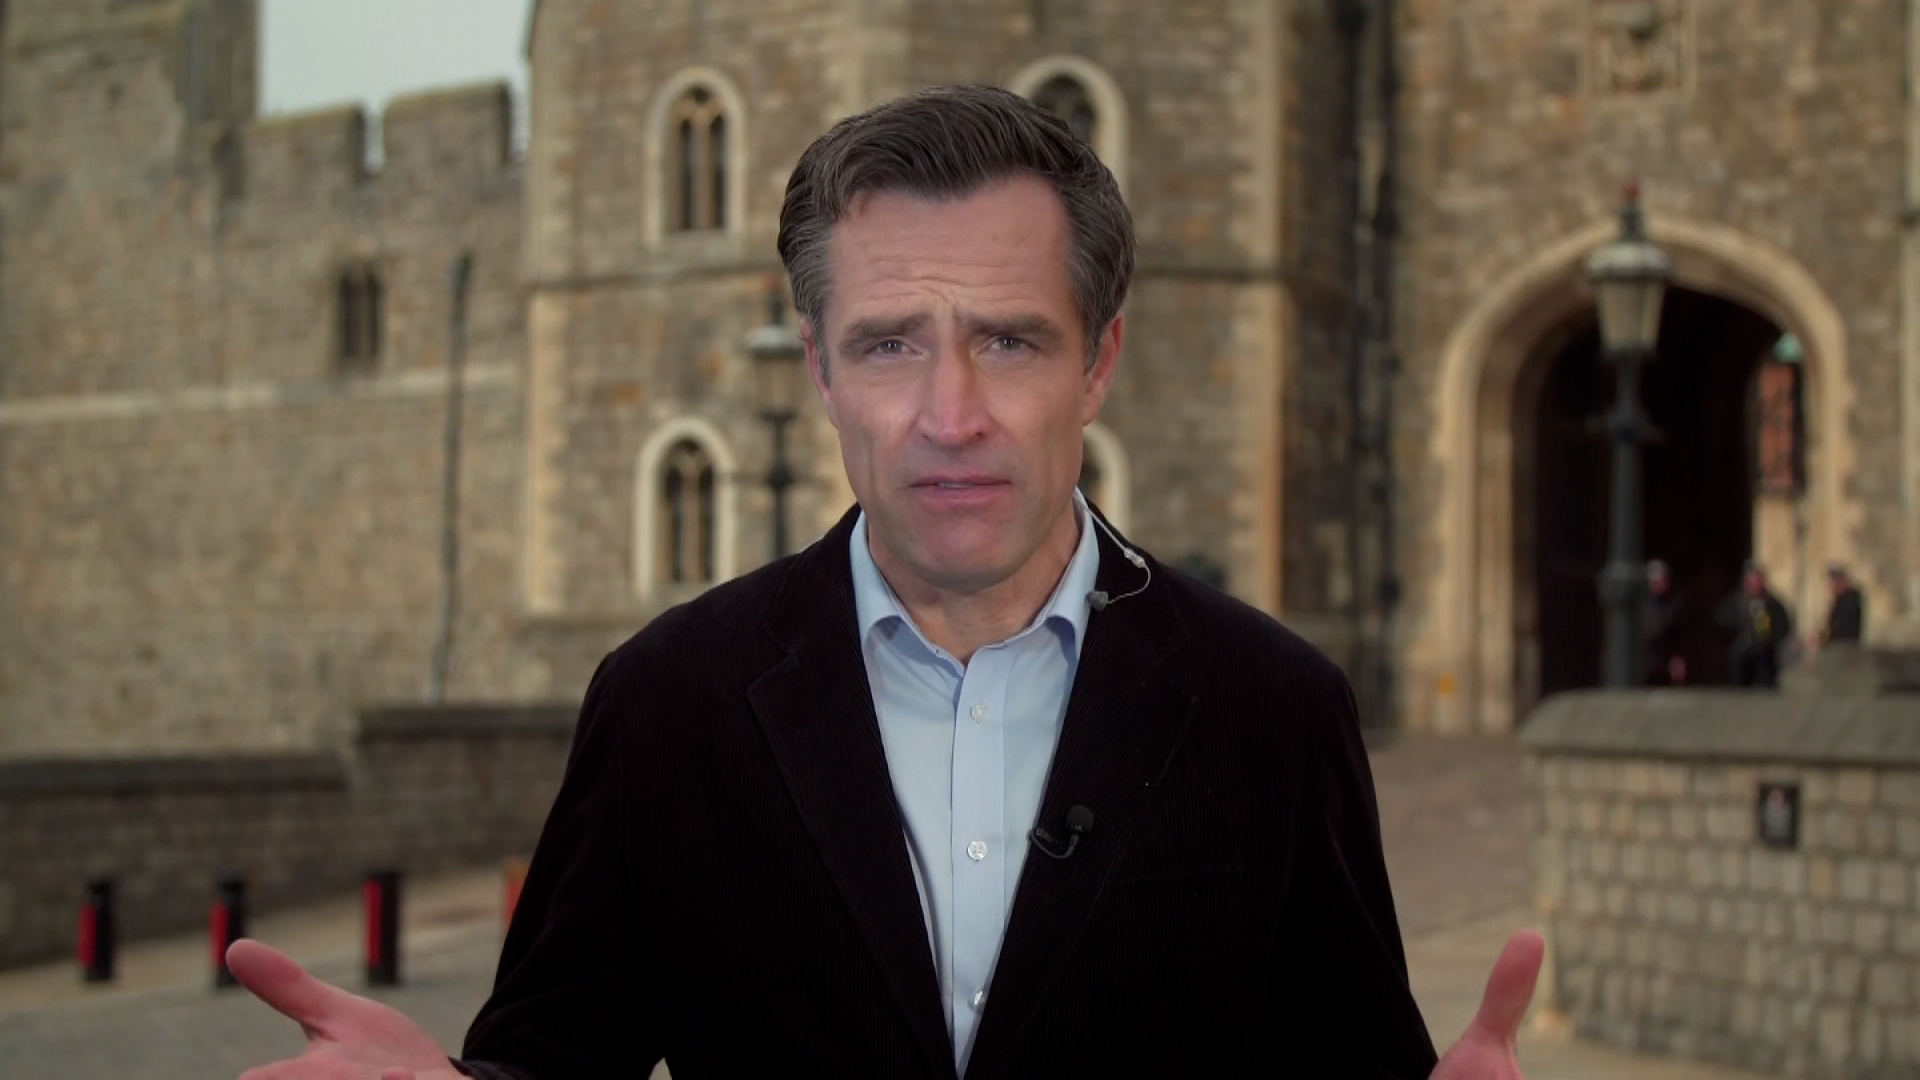 CNN's royal correspondent Max Foster speaks outside outside Windsor Palace in Windsor, England, on March 8.